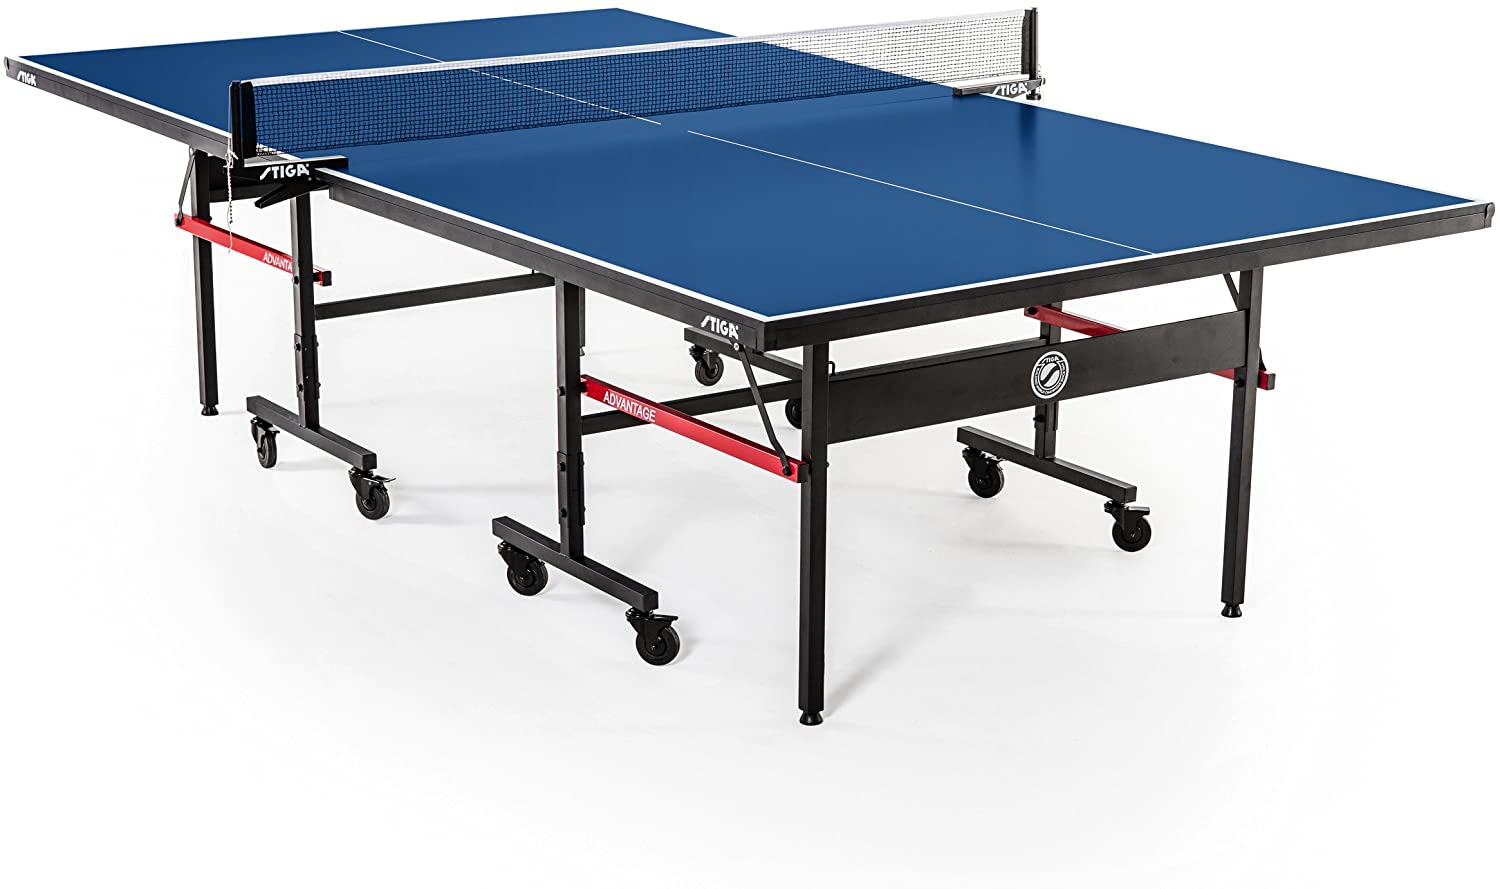 1. STIGA Advantage Indoor Table Tennis Table